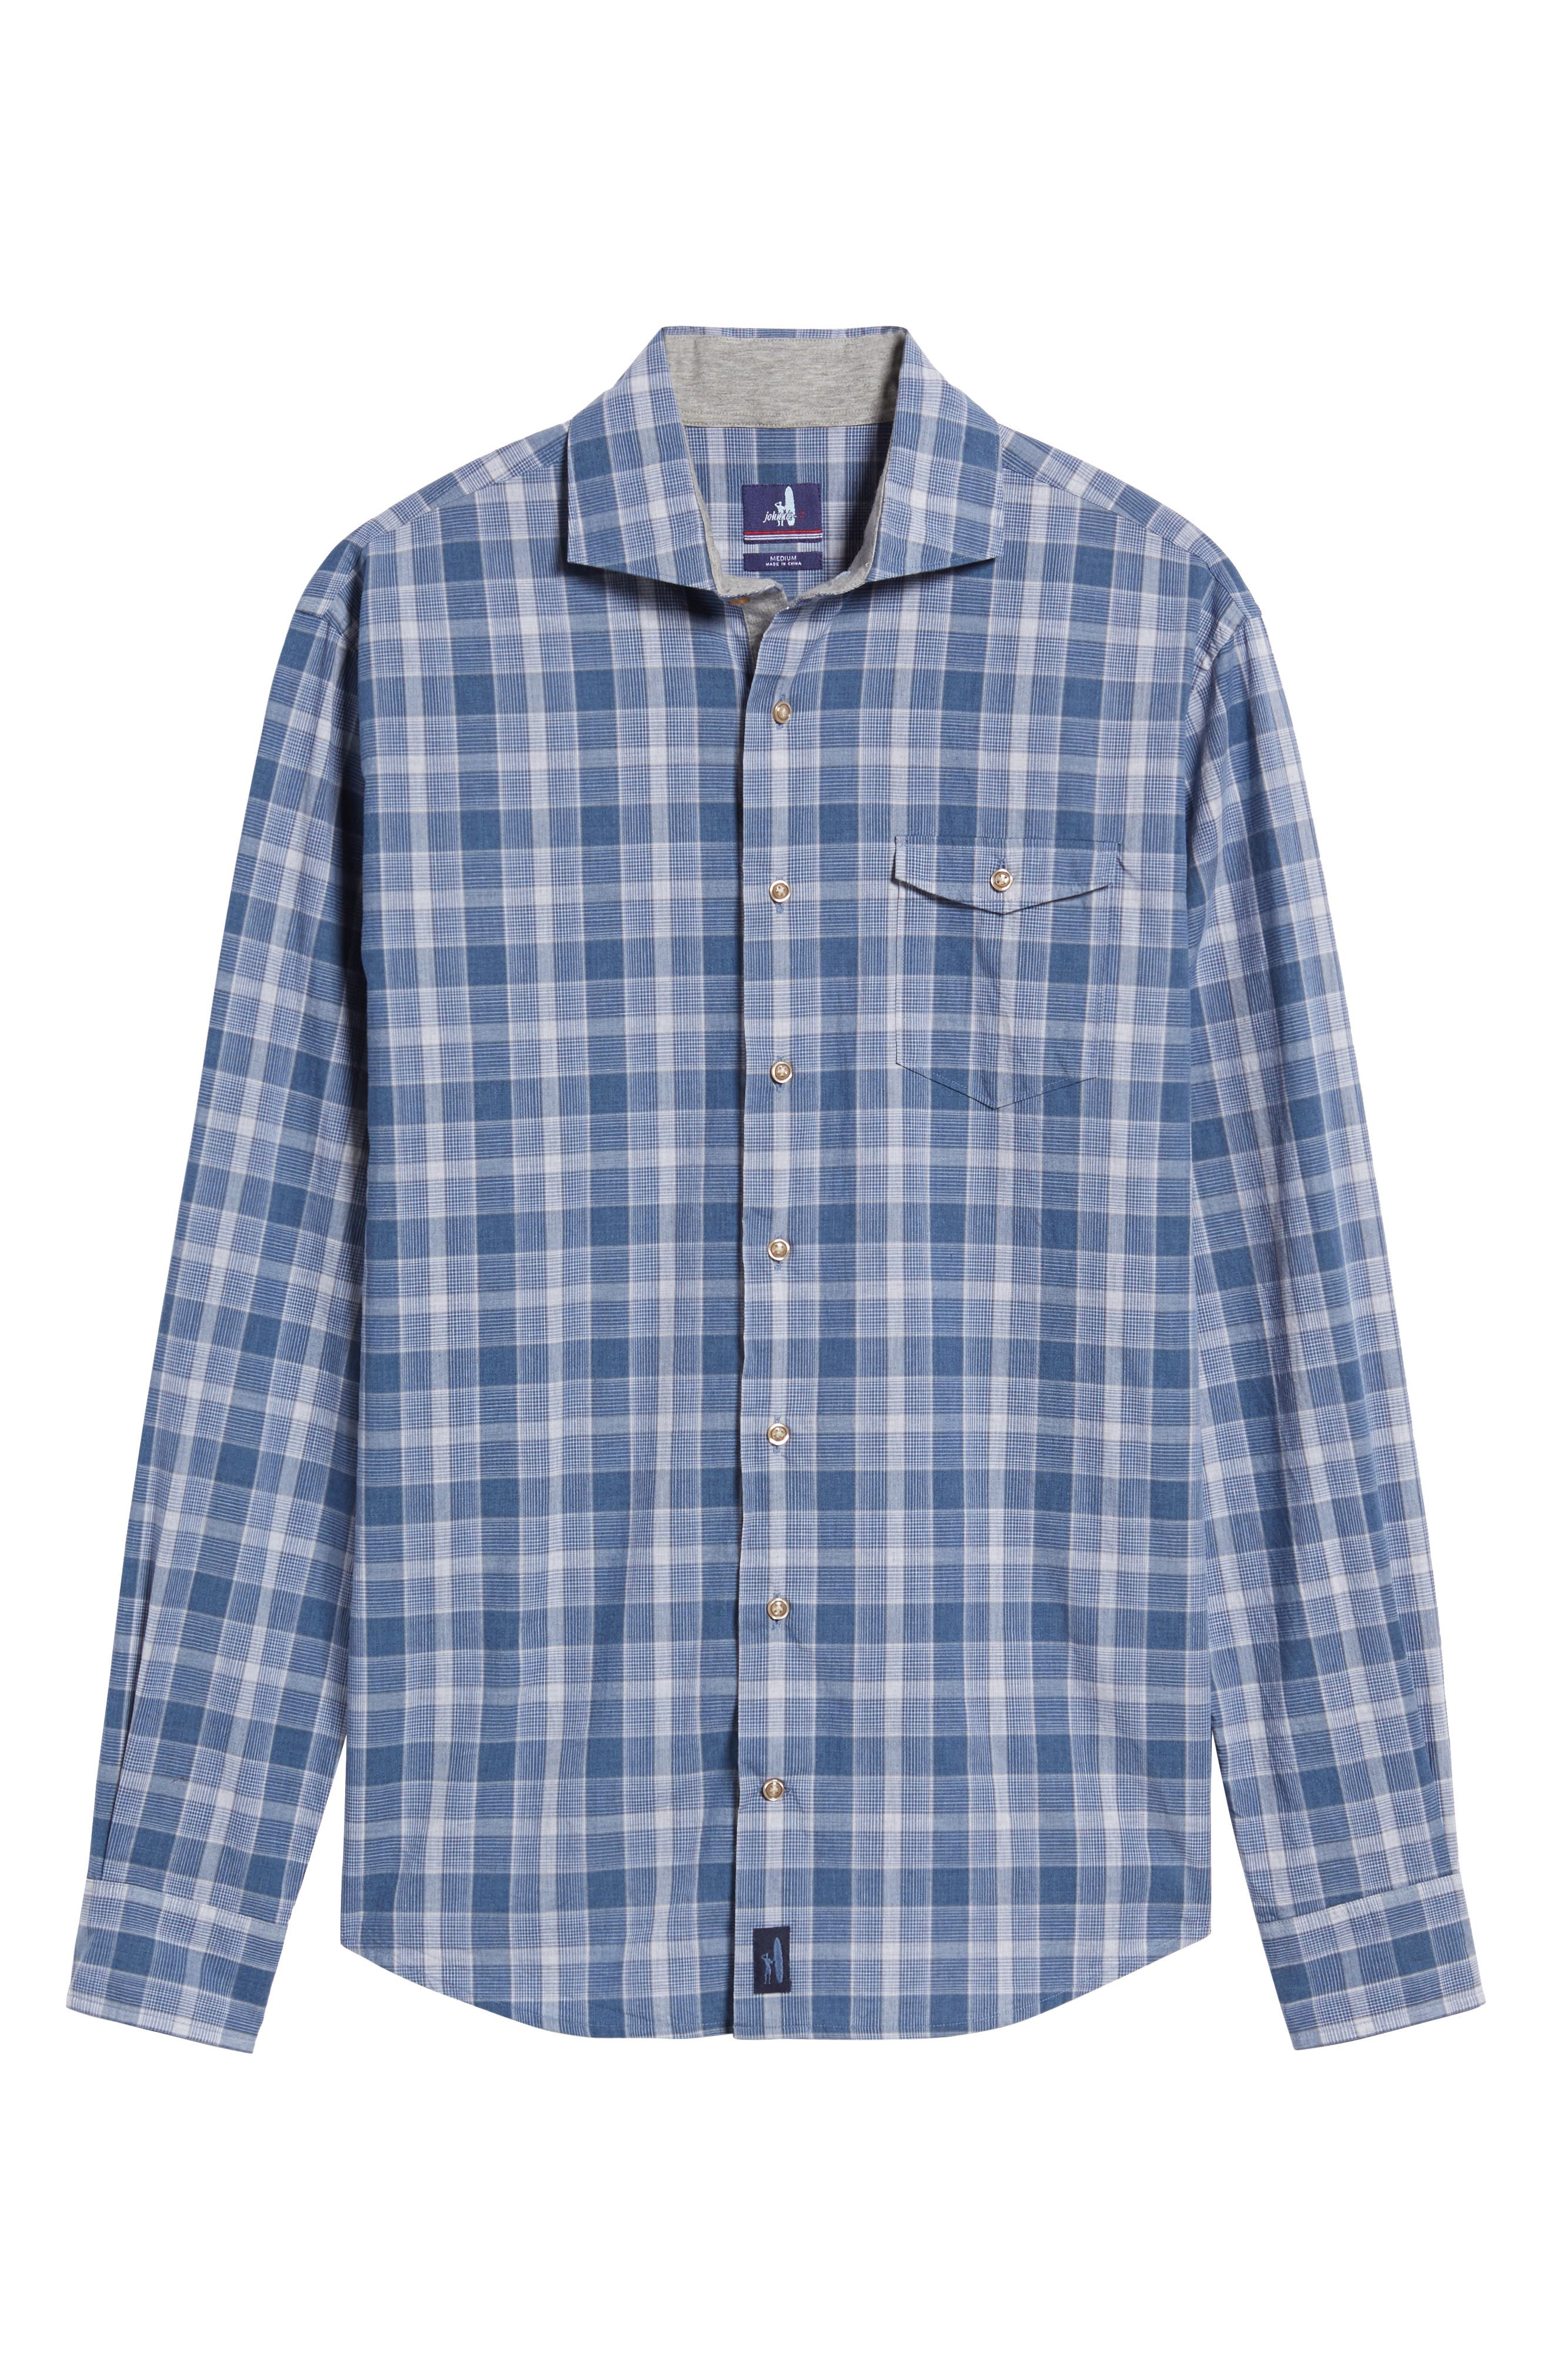 Highlands Classic Fit Plaid Sport Shirt,                             Alternate thumbnail 6, color,                             Abyss